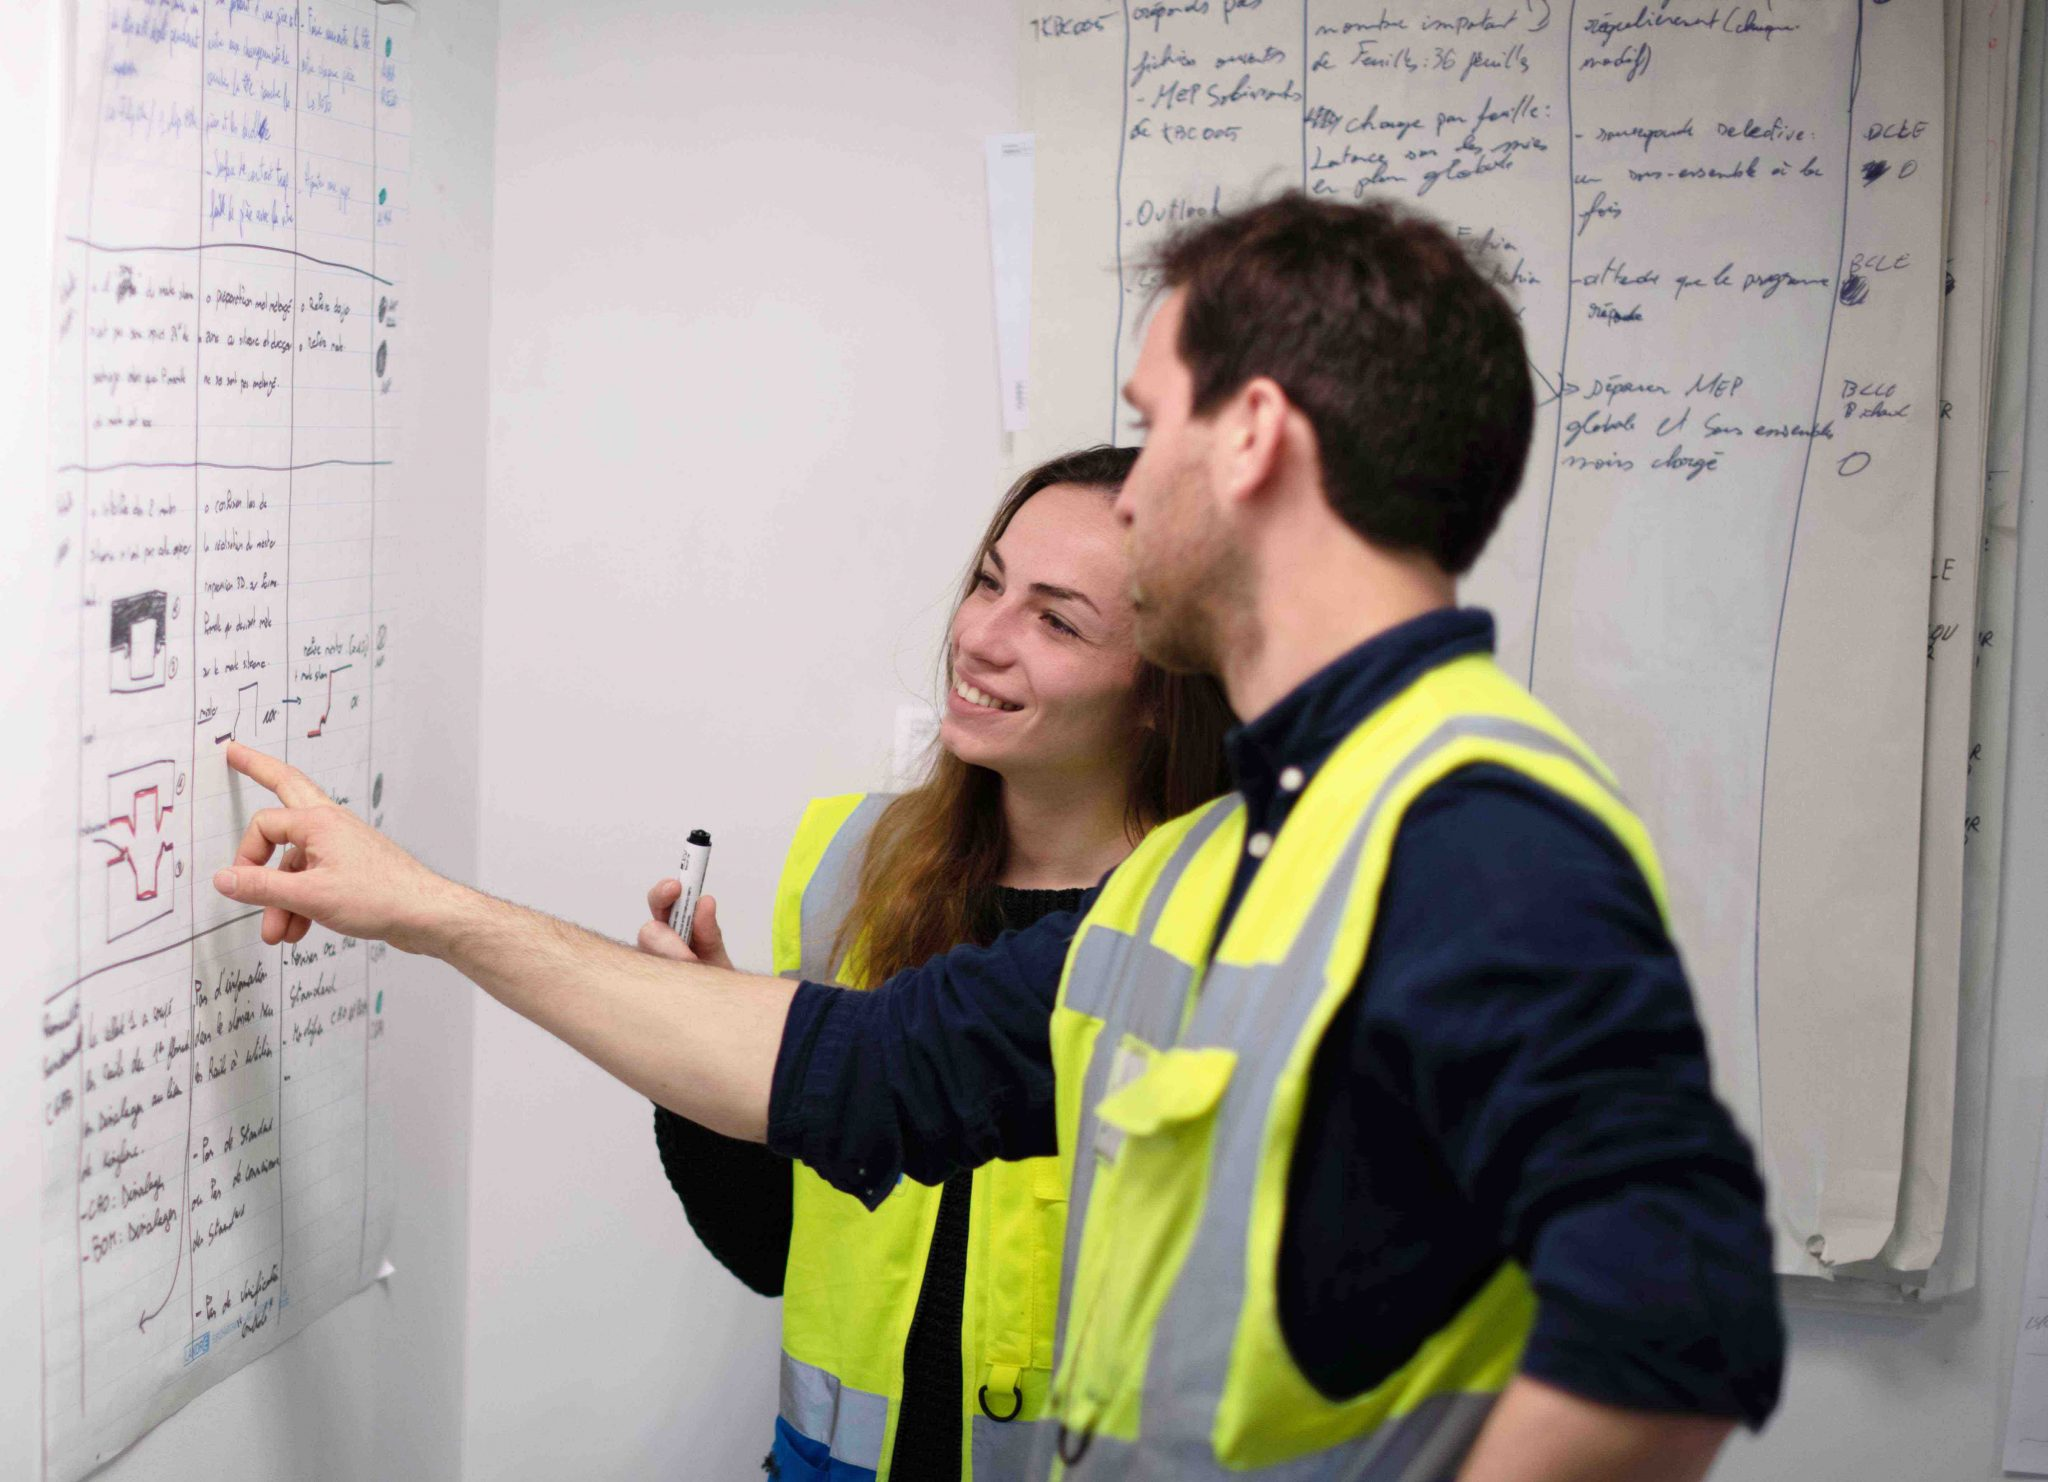 Male and female engineer learning together